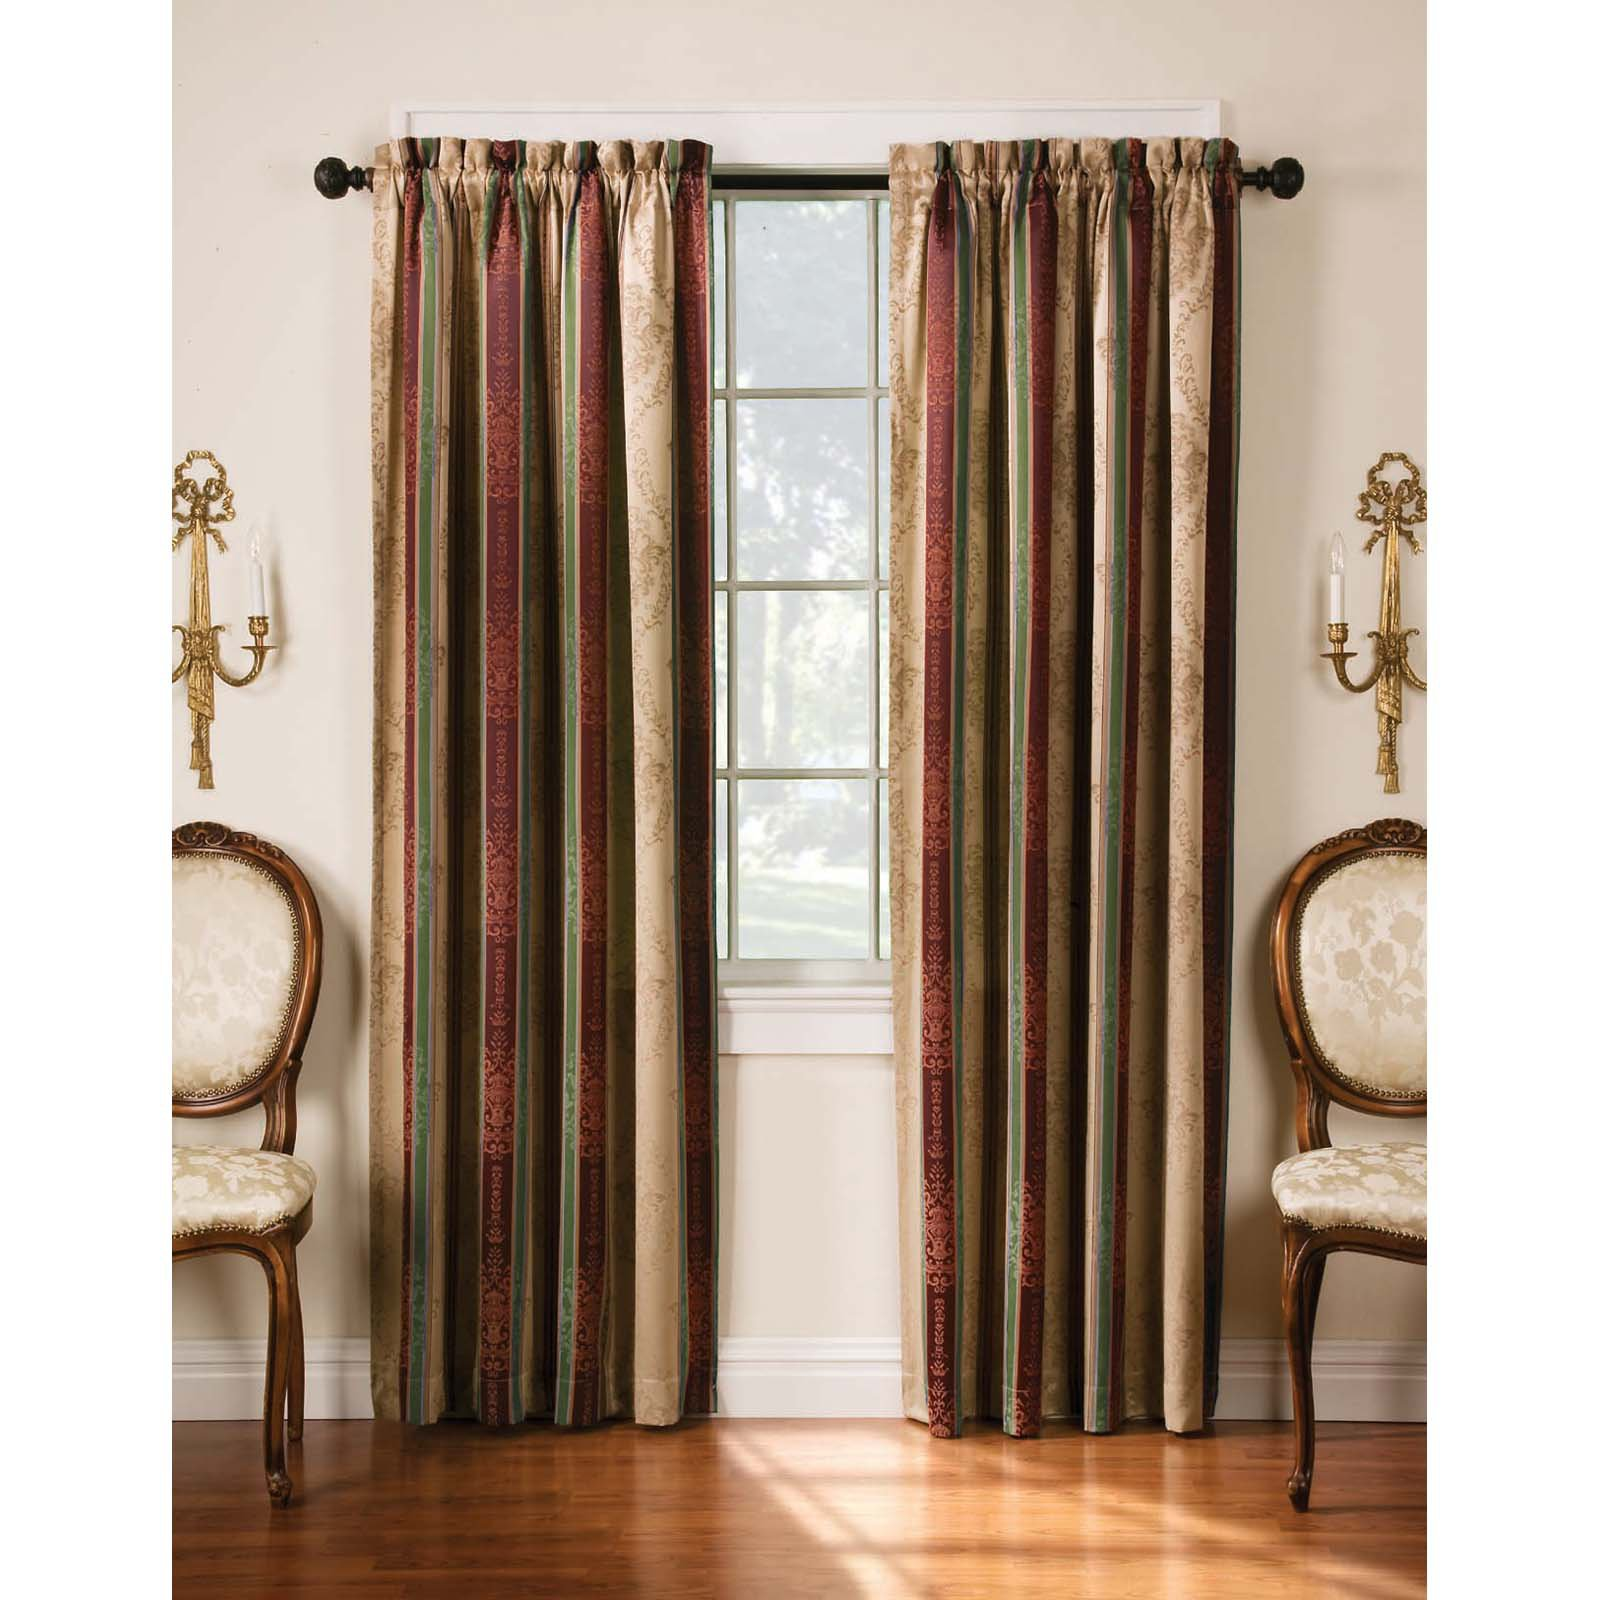 White Light Blocking Curtains | Cheap Blackout Curtains | Drapes with Blackout Lining